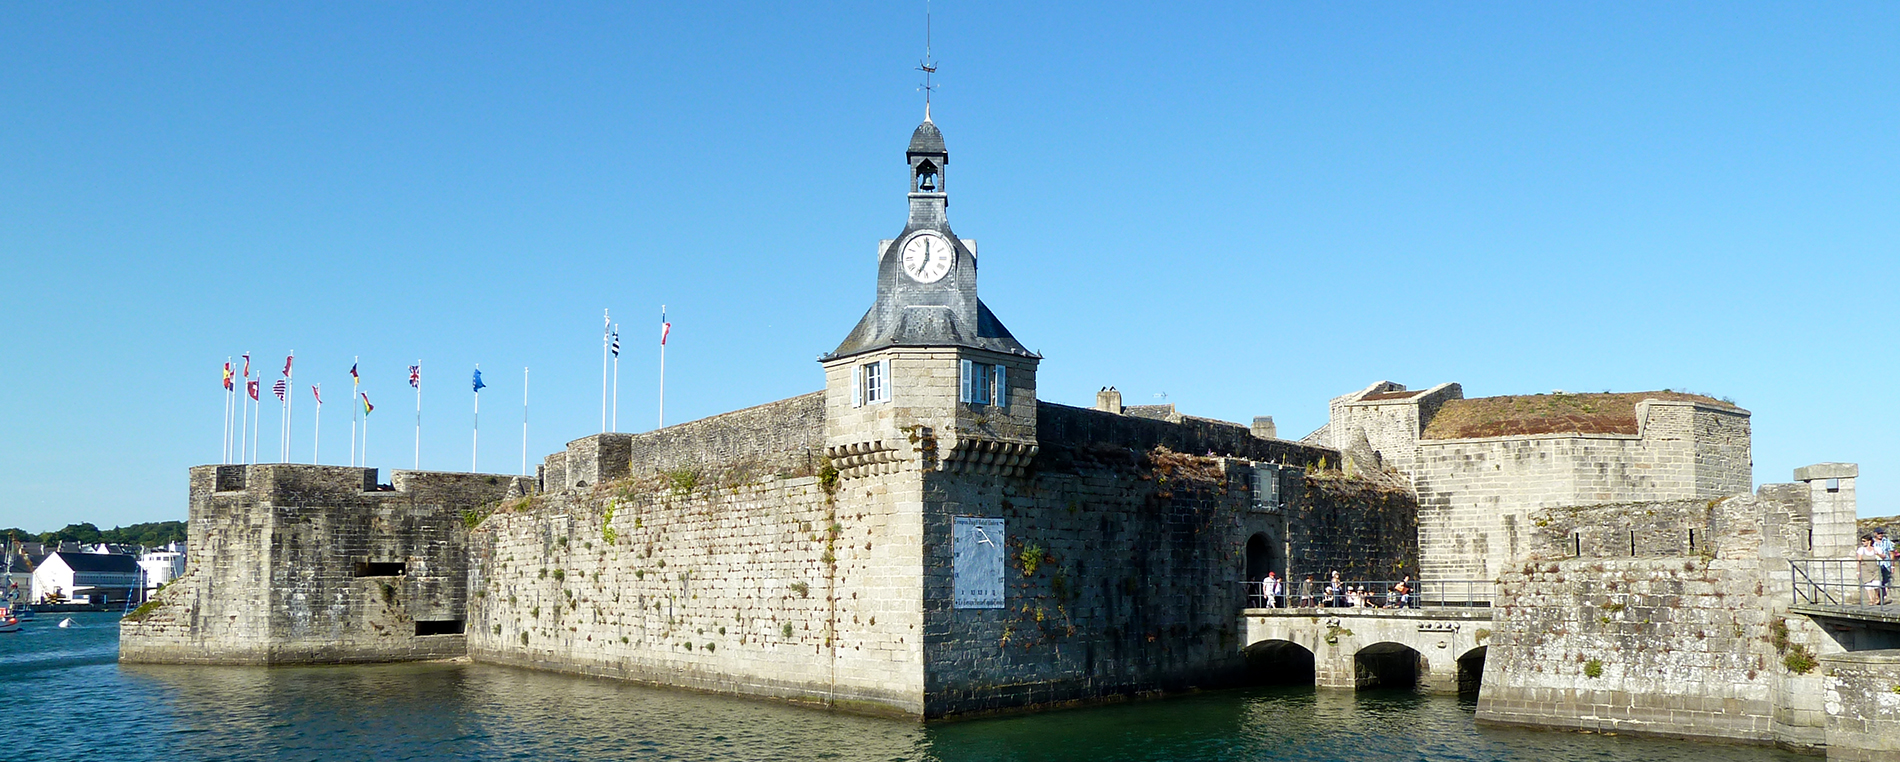 La Ville-Close à Concarneau